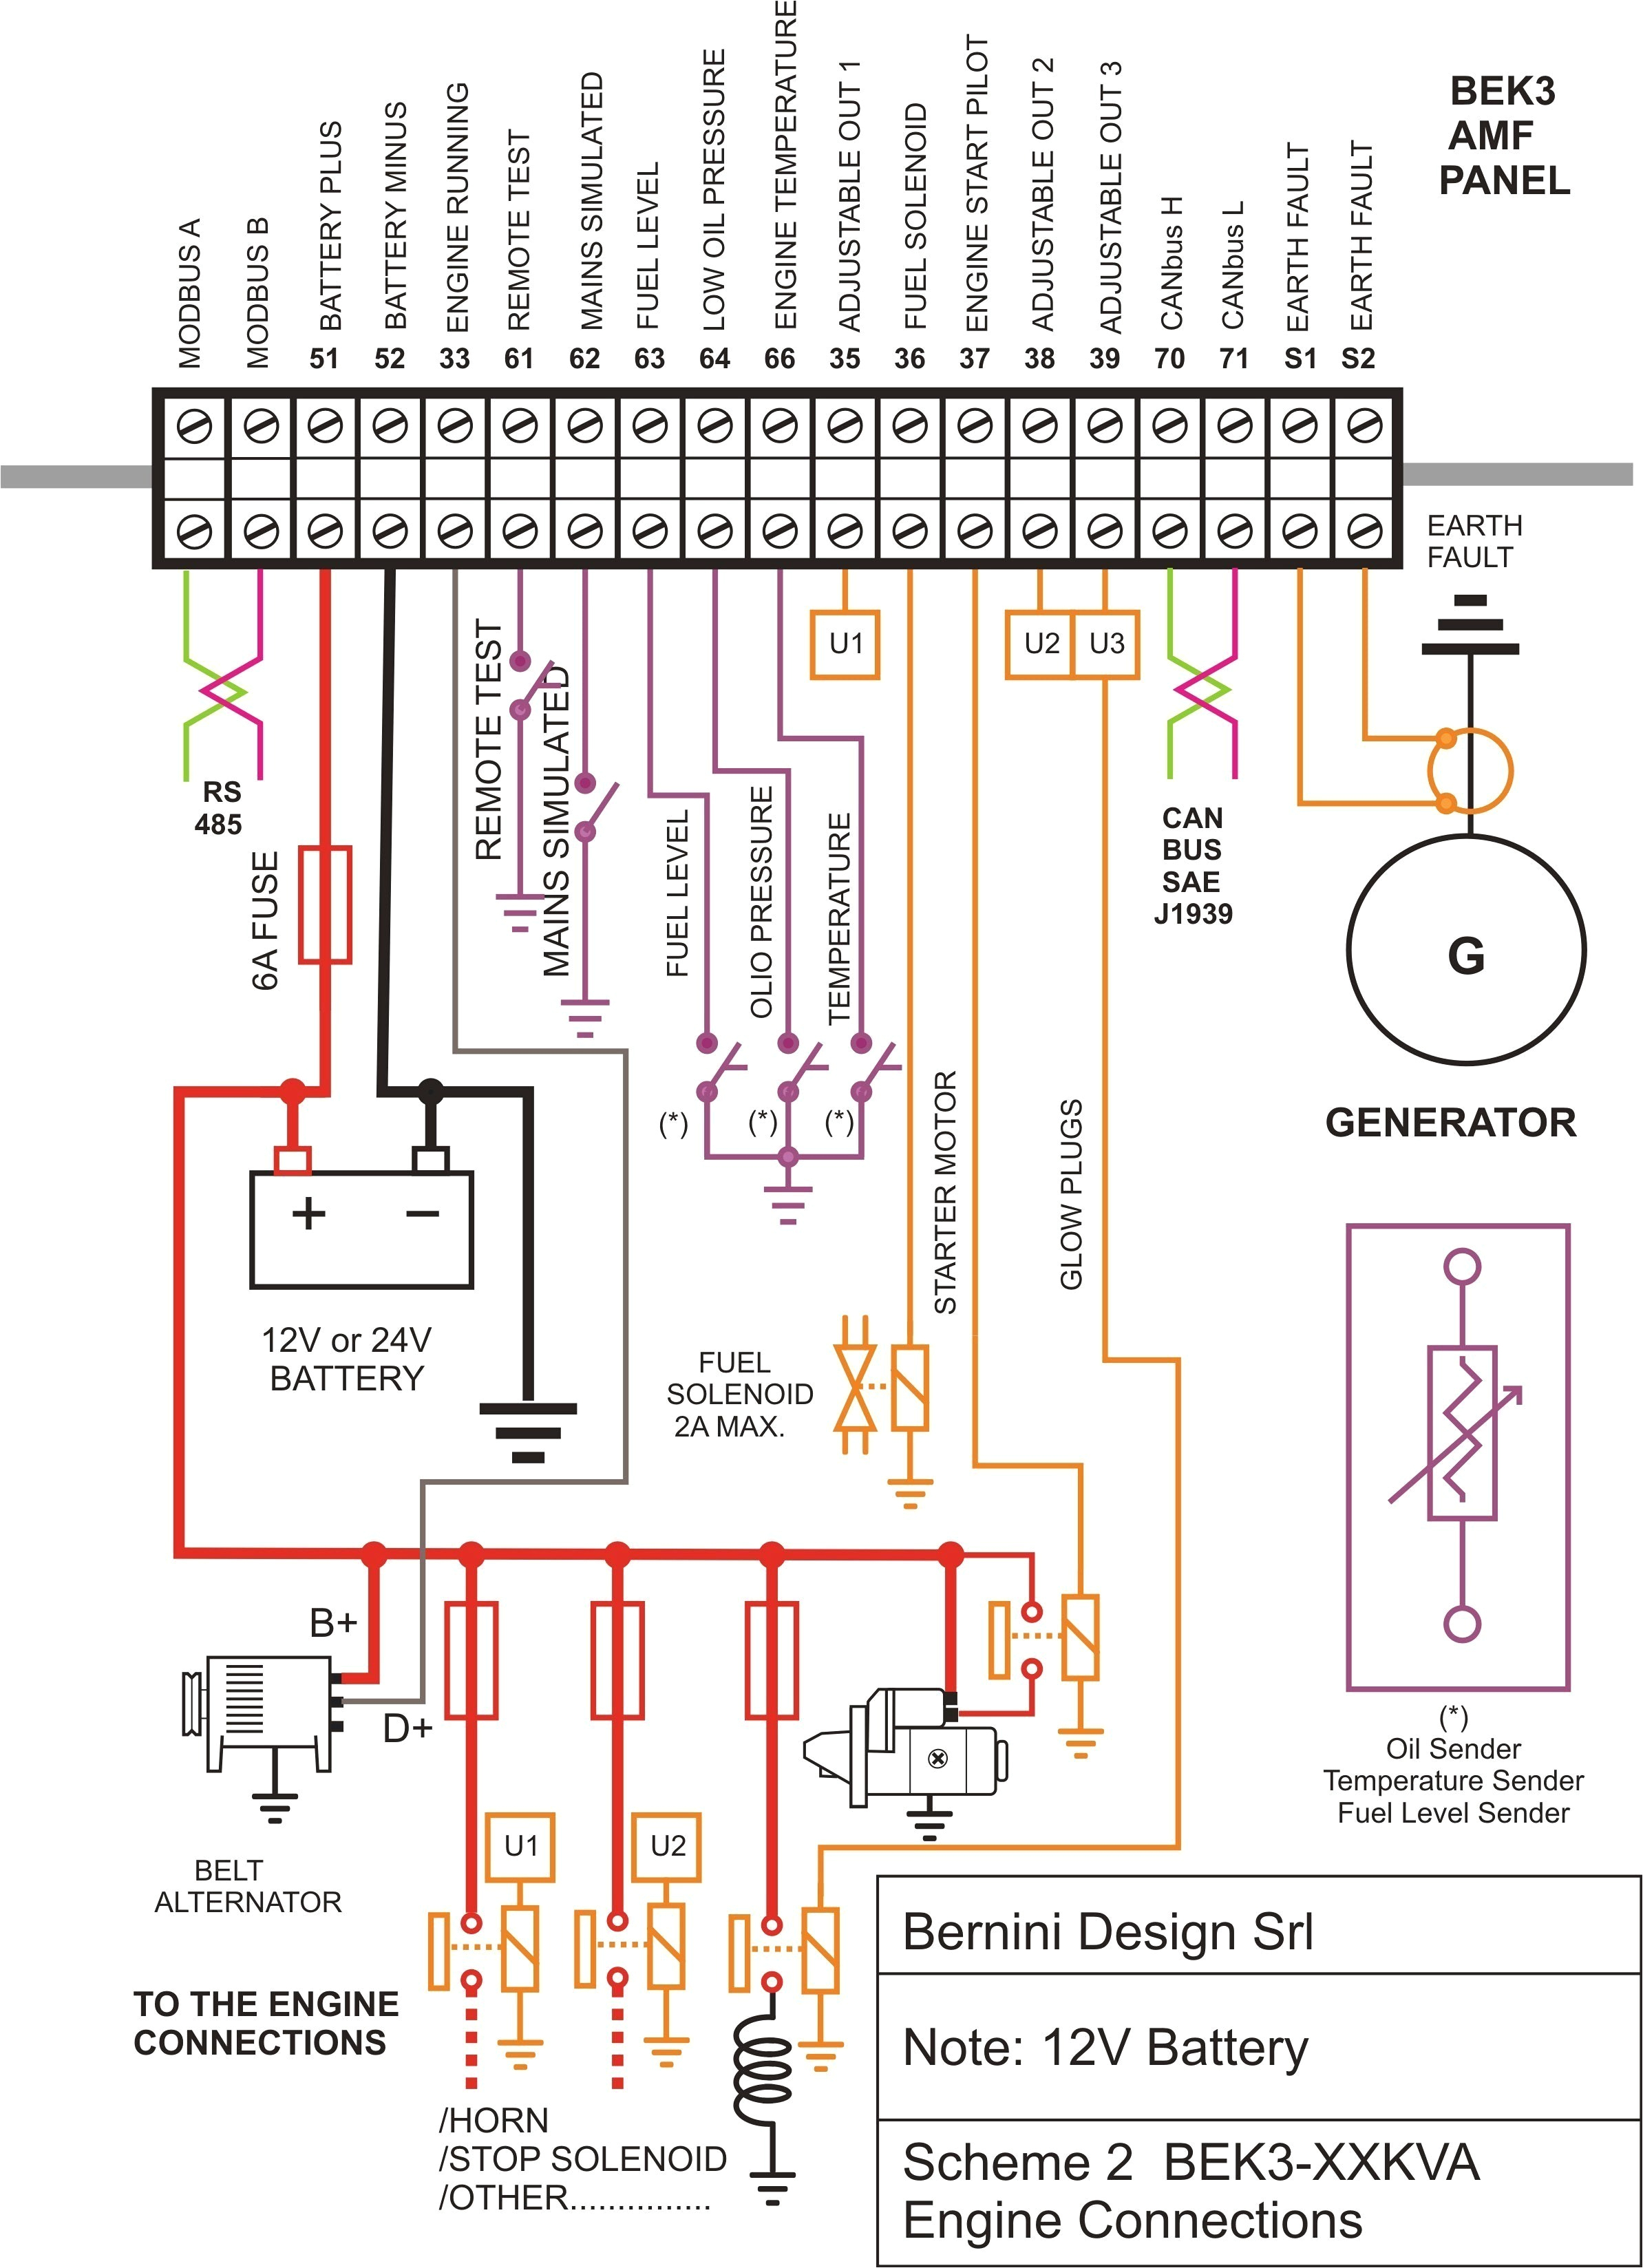 electrical wiring diagram house collection electrical wiring diagrams best electrical diagram for house unique best download wiring diagram